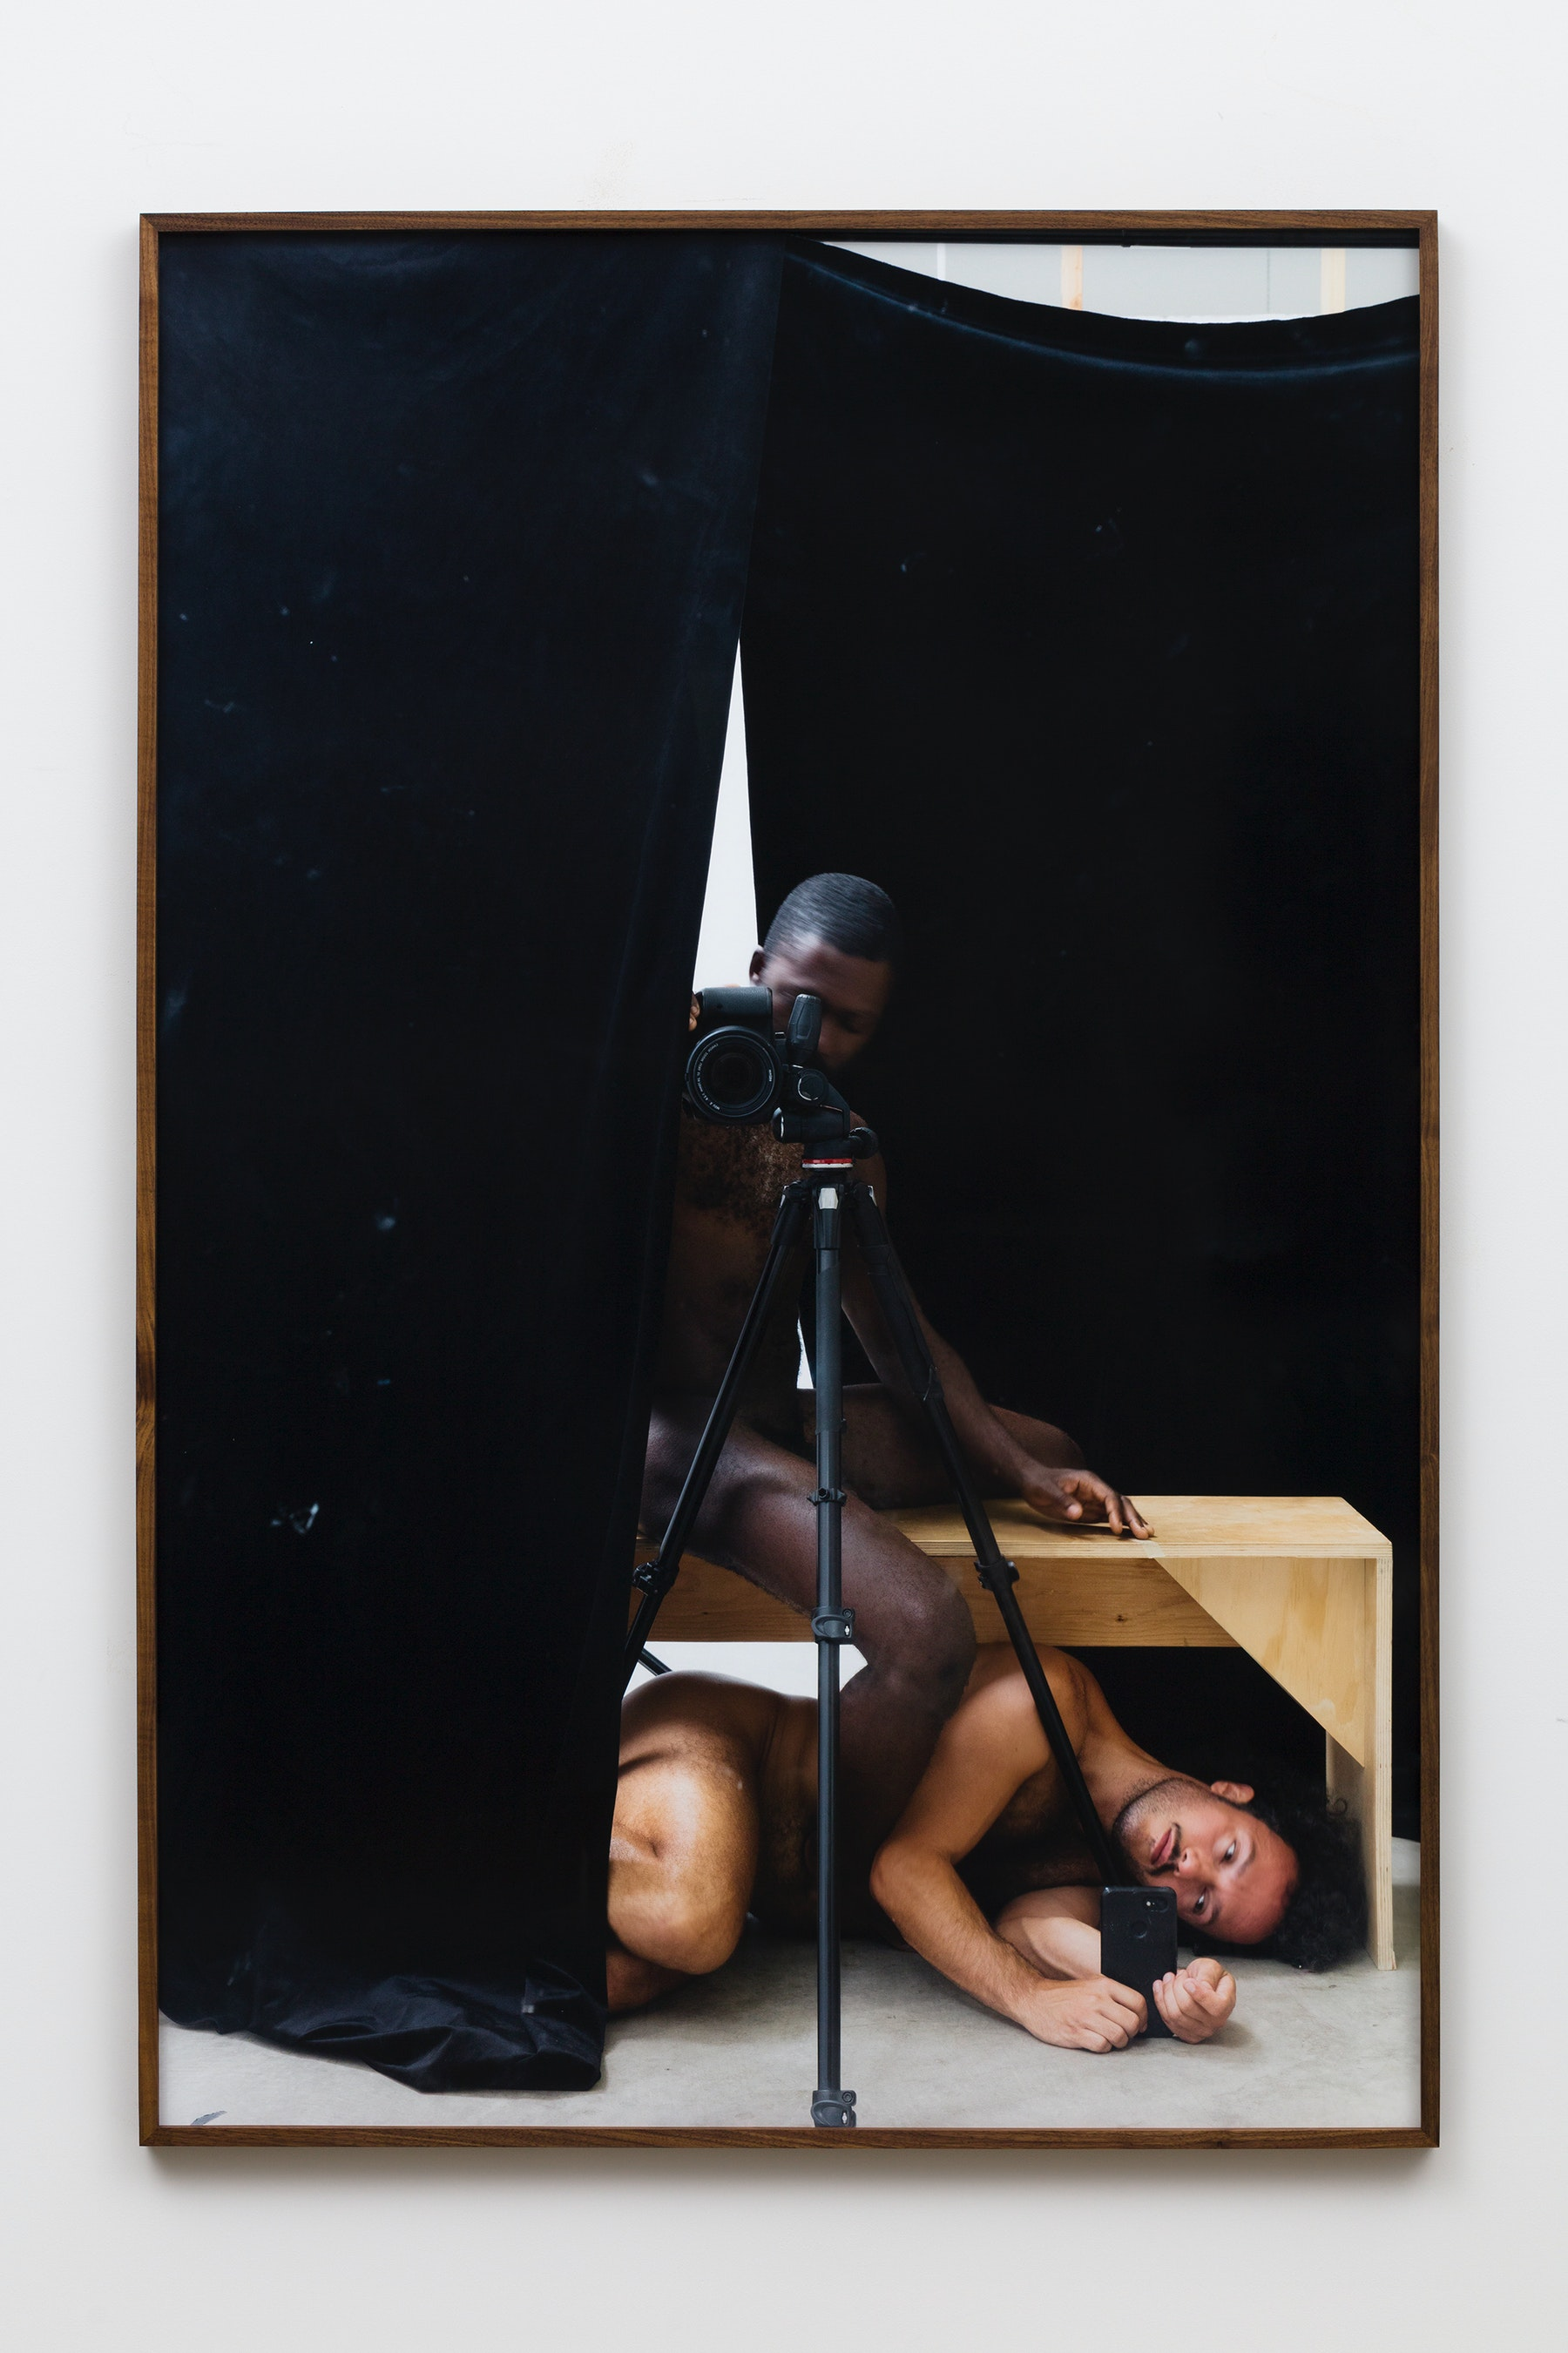 """Paul Mpagi Sepuya """"A conversation around pictures (0X5A2615),"""" 2019 Archival pigment print 75 x 50"""" [HxW] (190.5 x 127 cm) Edition of 5, 2 AP Inventory #SEP659 Courtesy of the artist and Vielmetter Los Angeles Photo credit: Jeff McLane"""